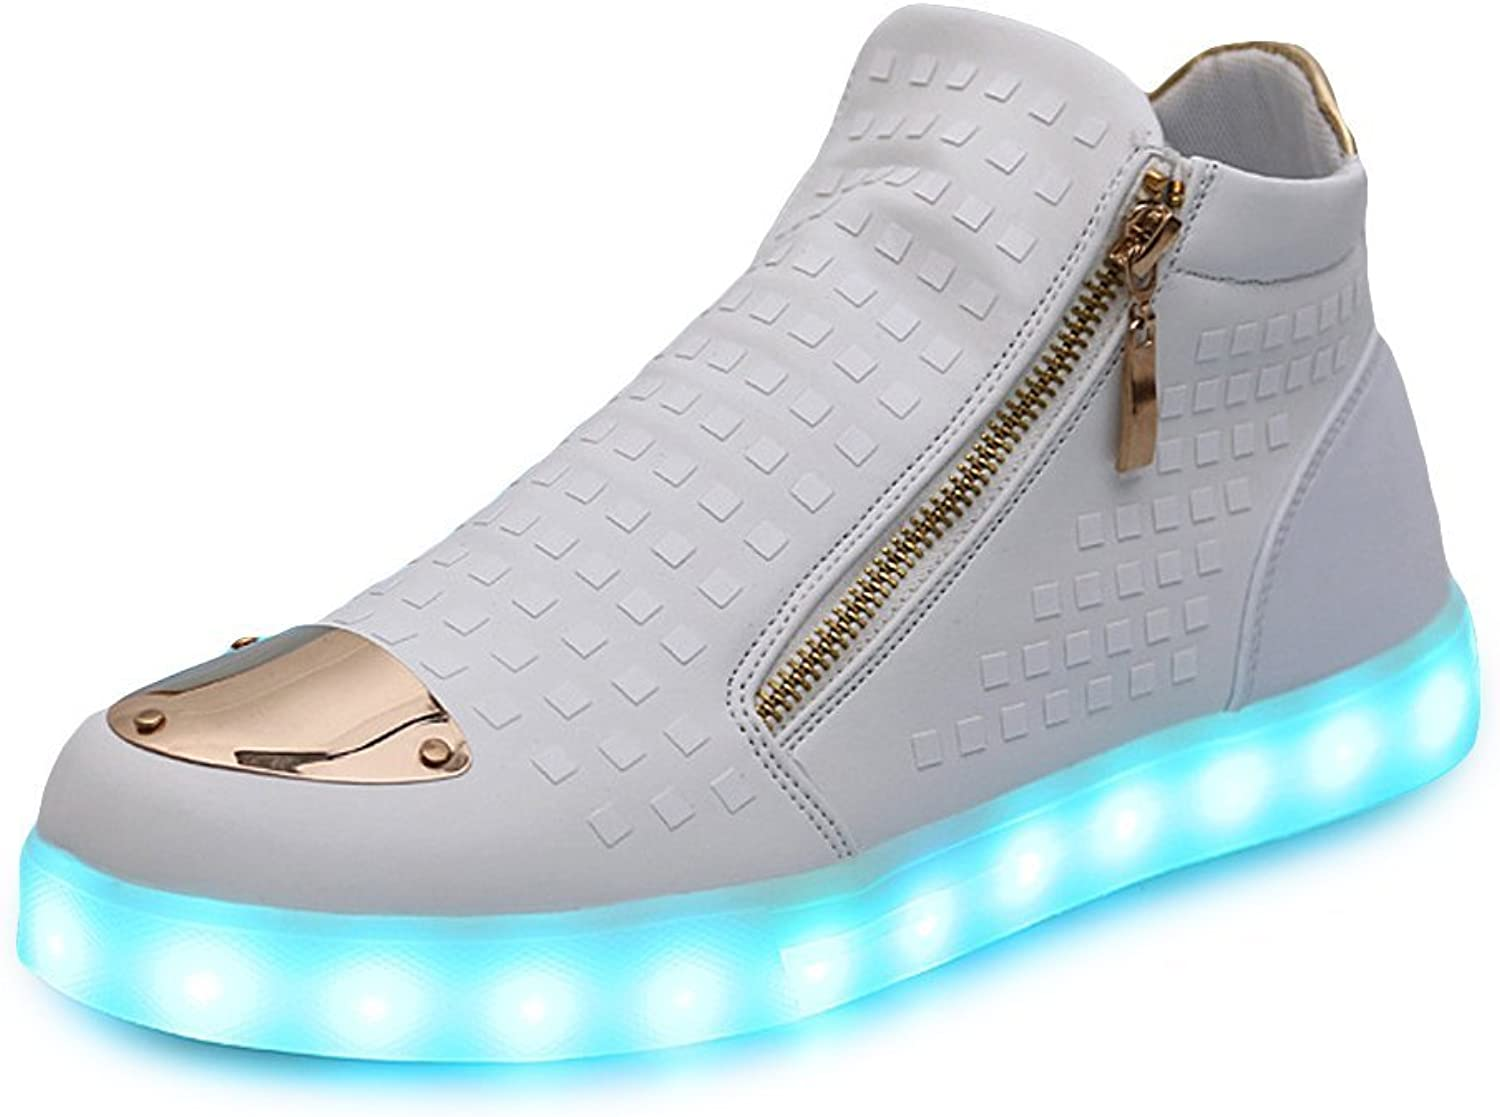 Sexphd Unisex Women Men LED Light Up Sneakers High Top shoes USB Charging Trainers Birthday Gift